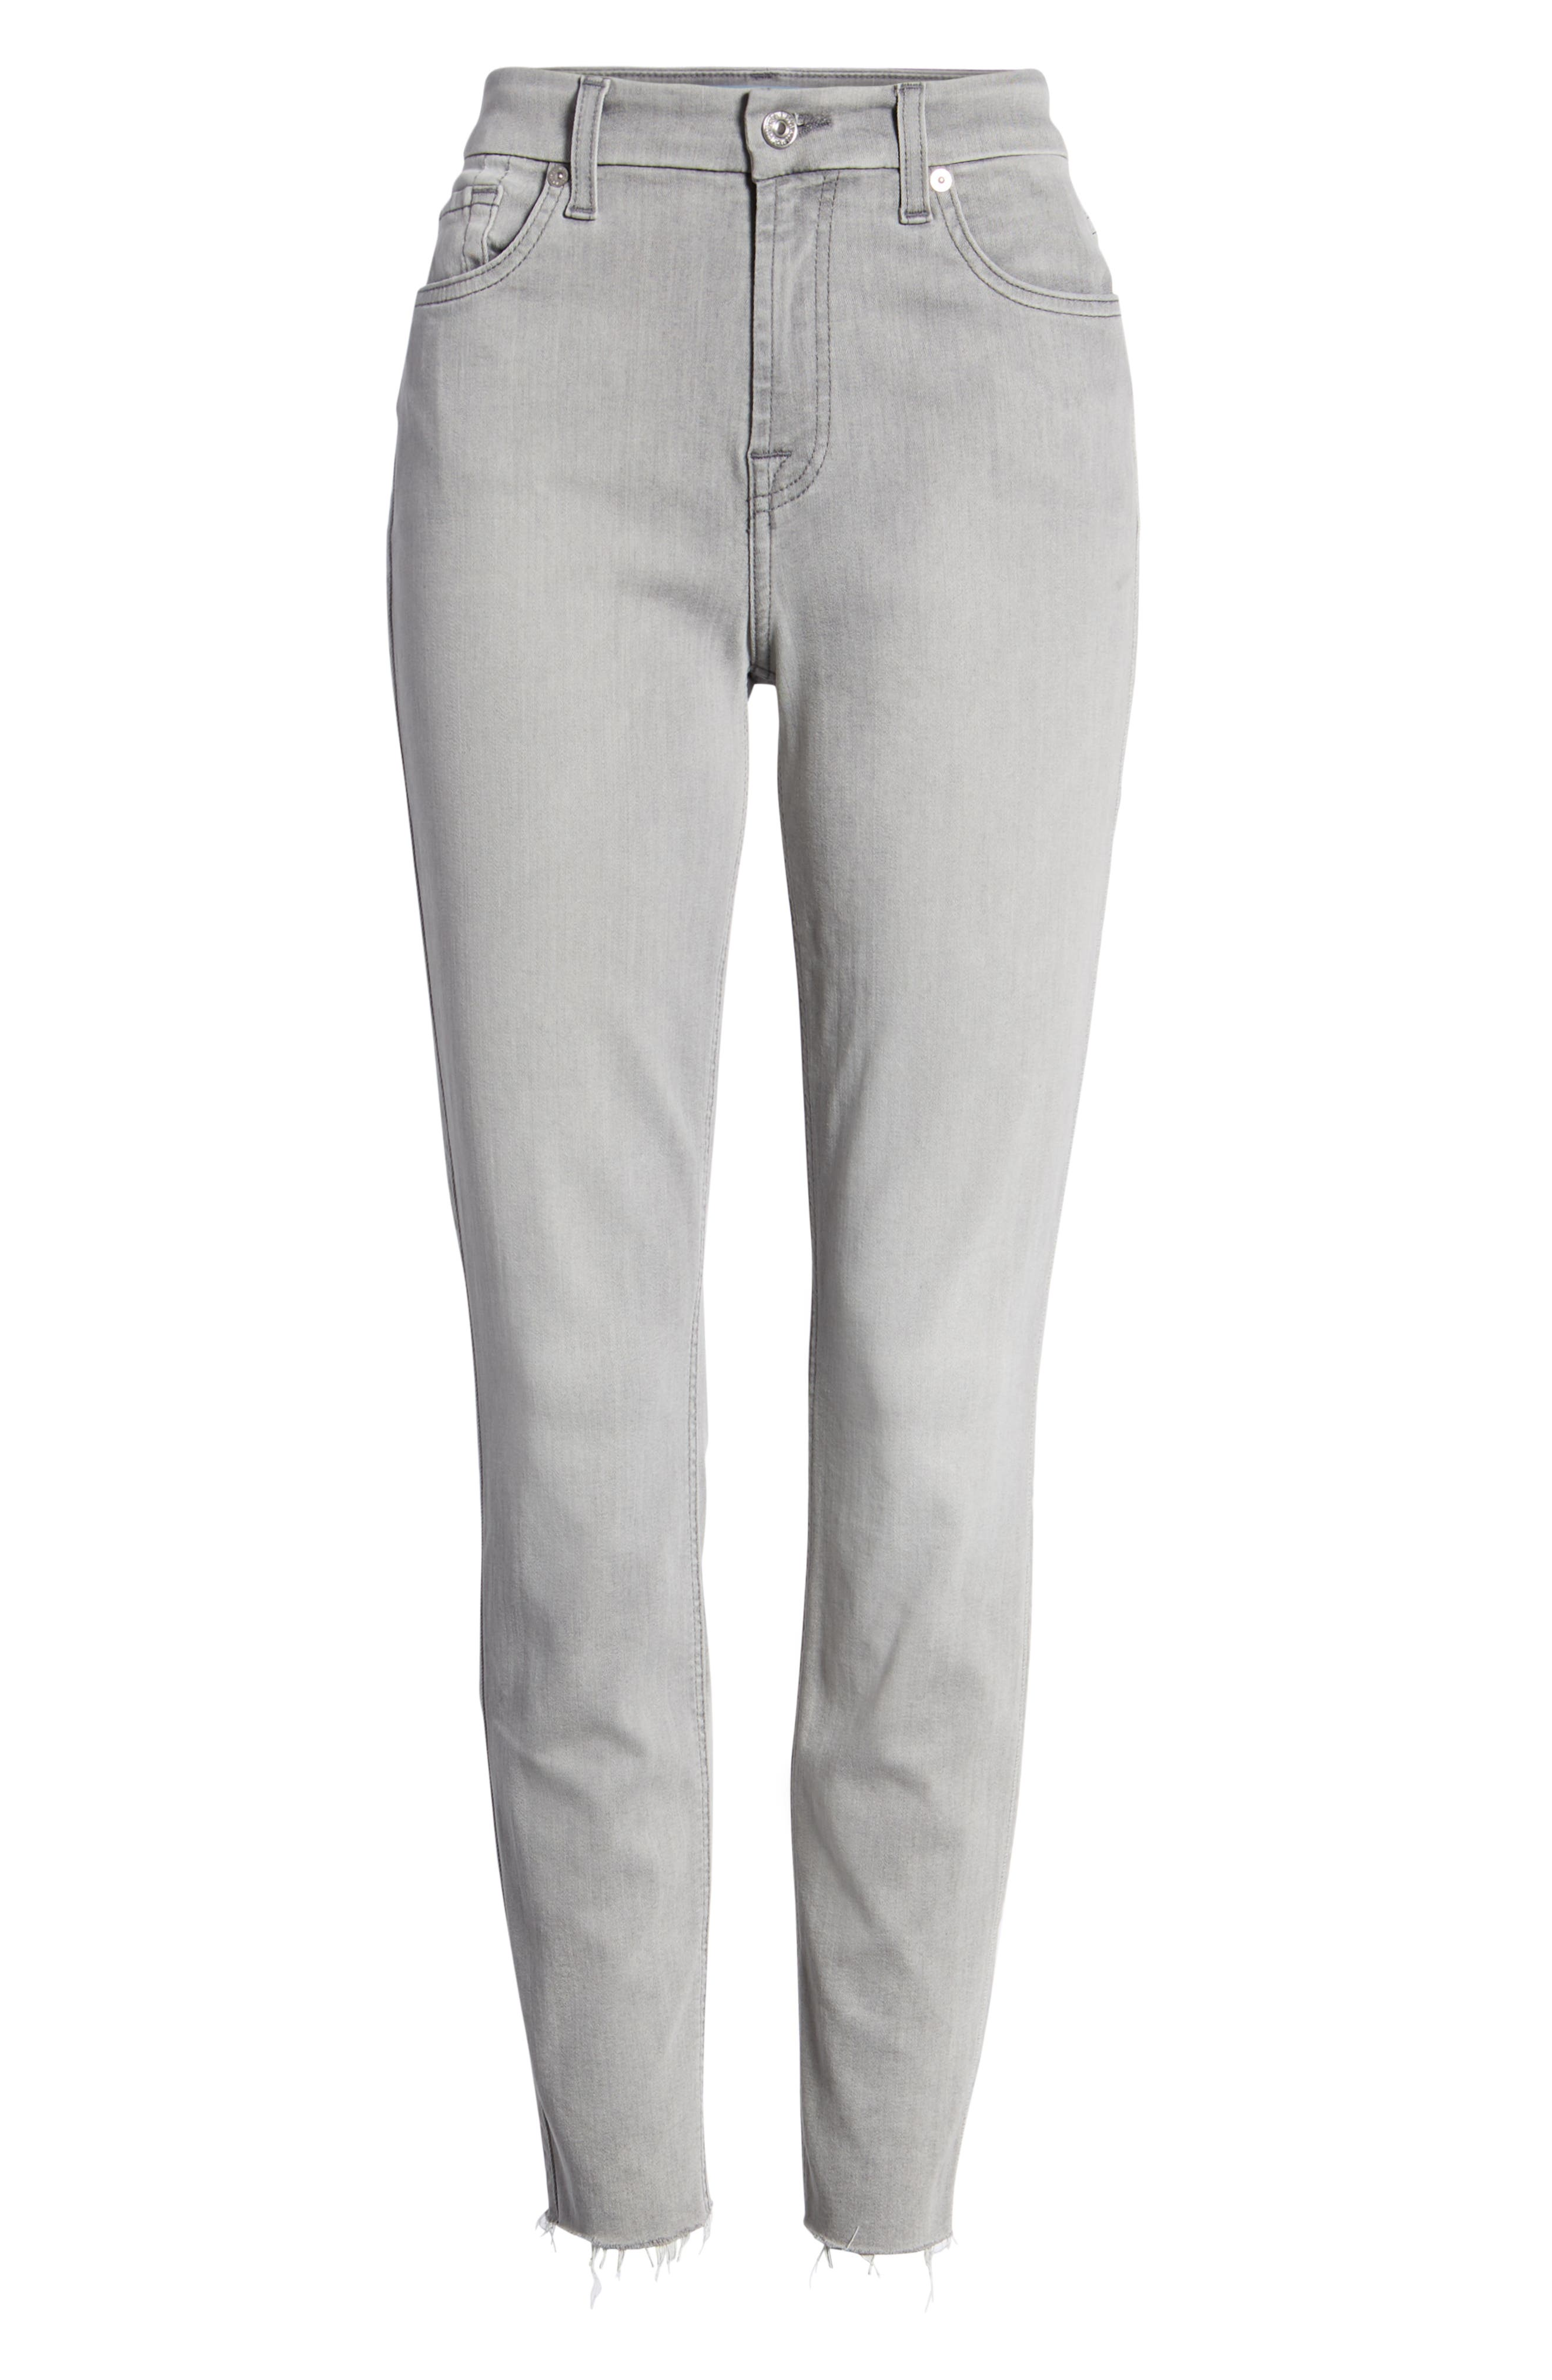 7 FOR ALL MANKIND<SUP>®</SUP>, b(air) High Waist Raw Hem Ankle Skinny Jeans, Alternate thumbnail 7, color, BAIR PURE SOFT GREY